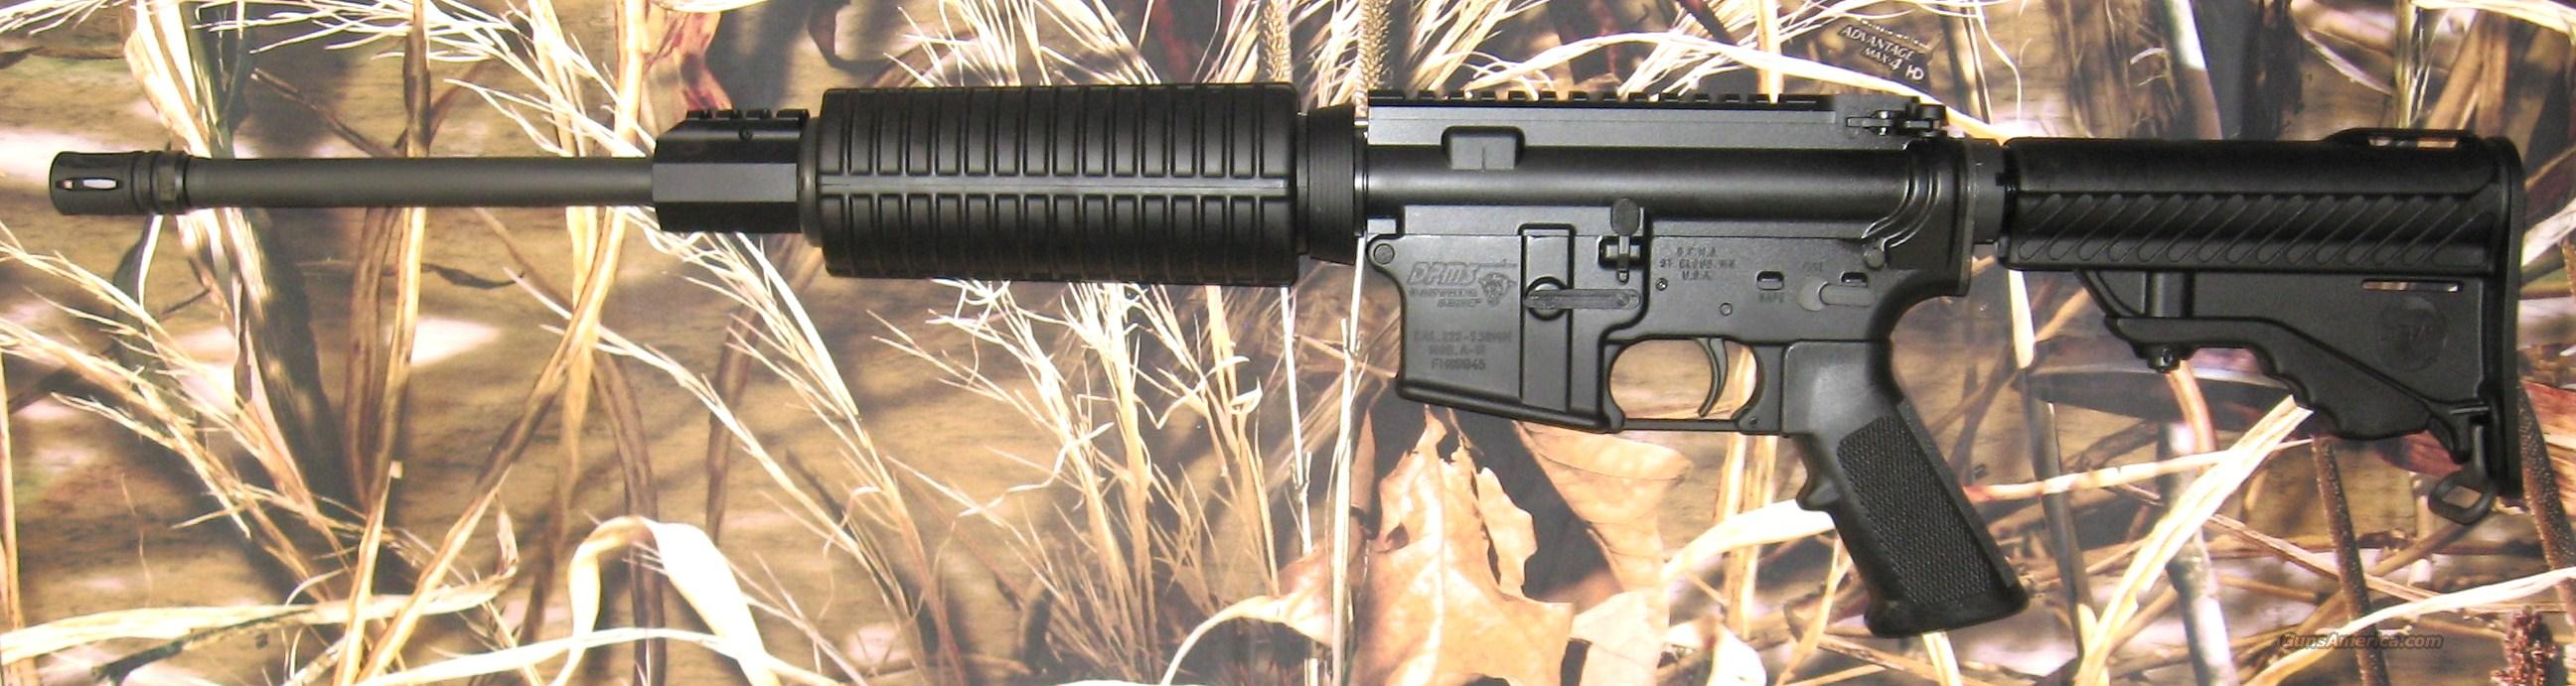 DPMS A-15 Oracle  Guns > Rifles > DPMS - Panther Arms > Complete Rifle